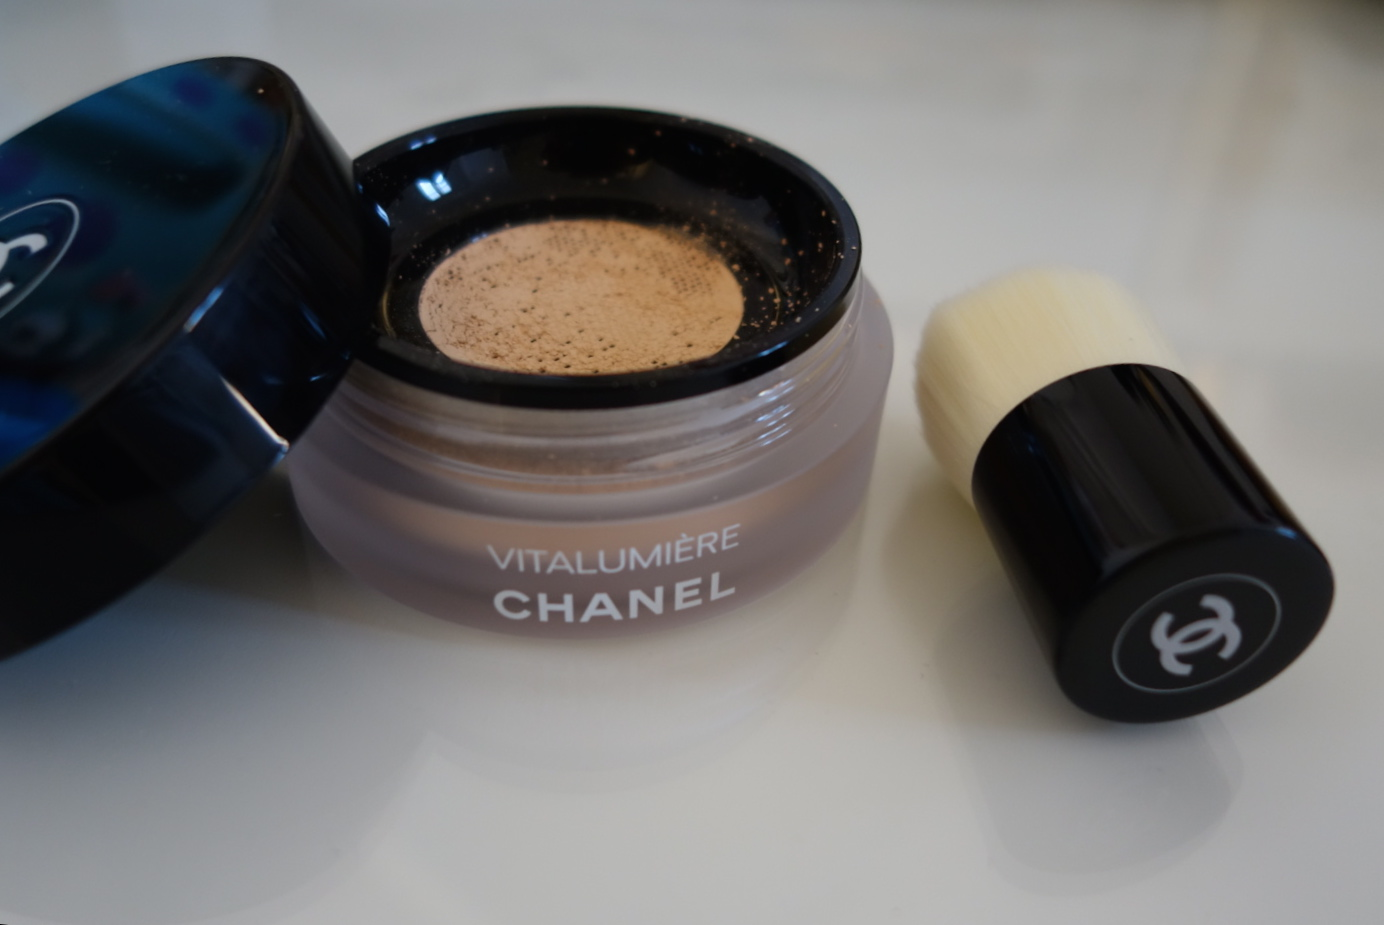 chanel loose powder foundation review